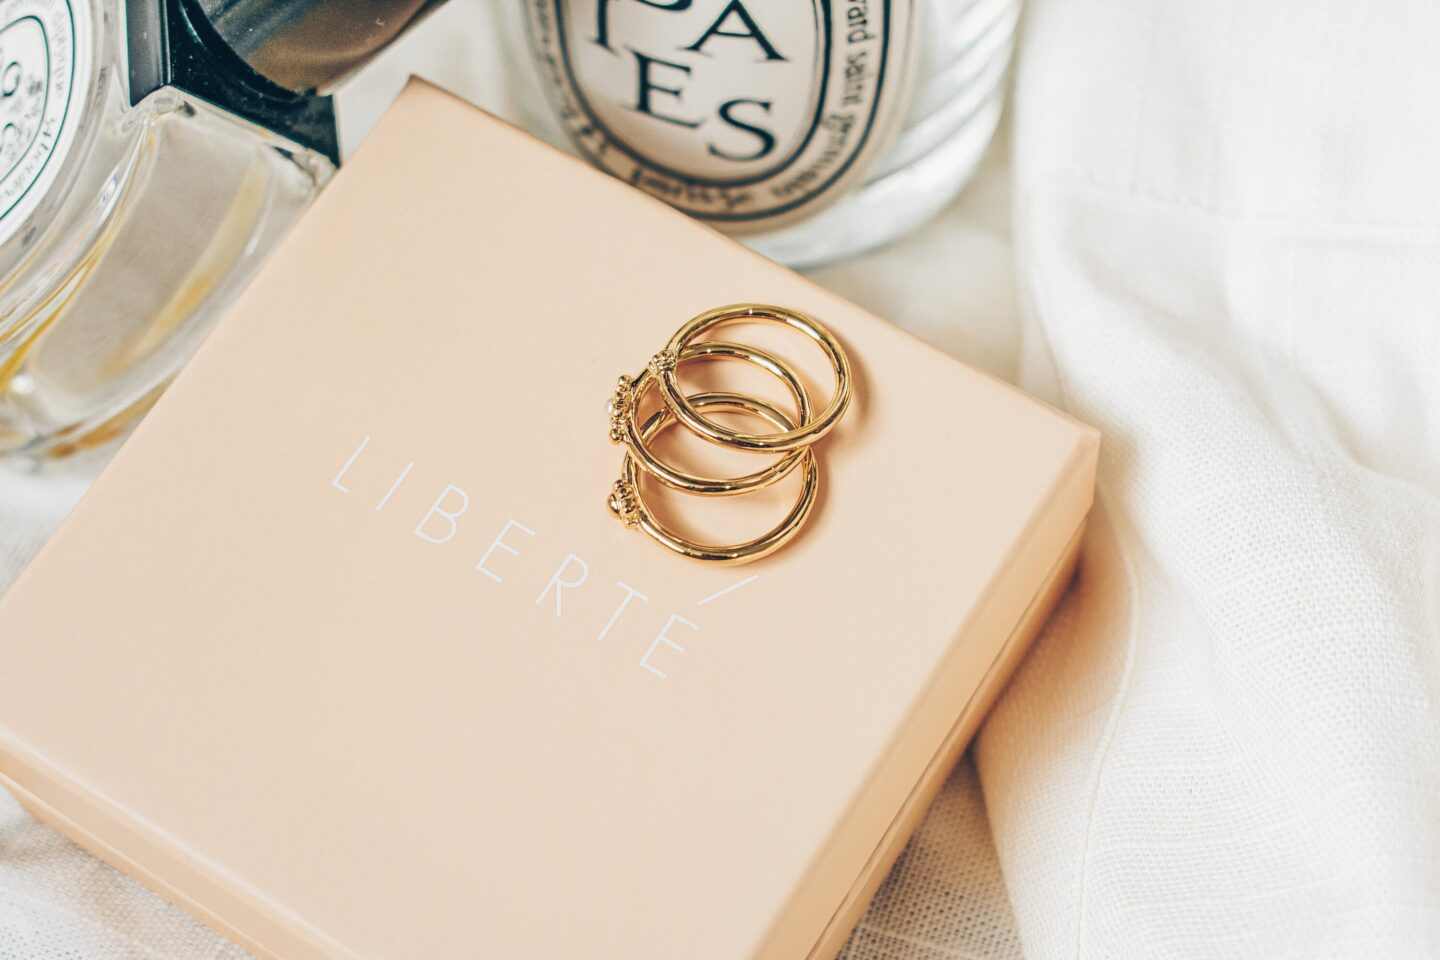 The Best Ways to Look After Jewellery